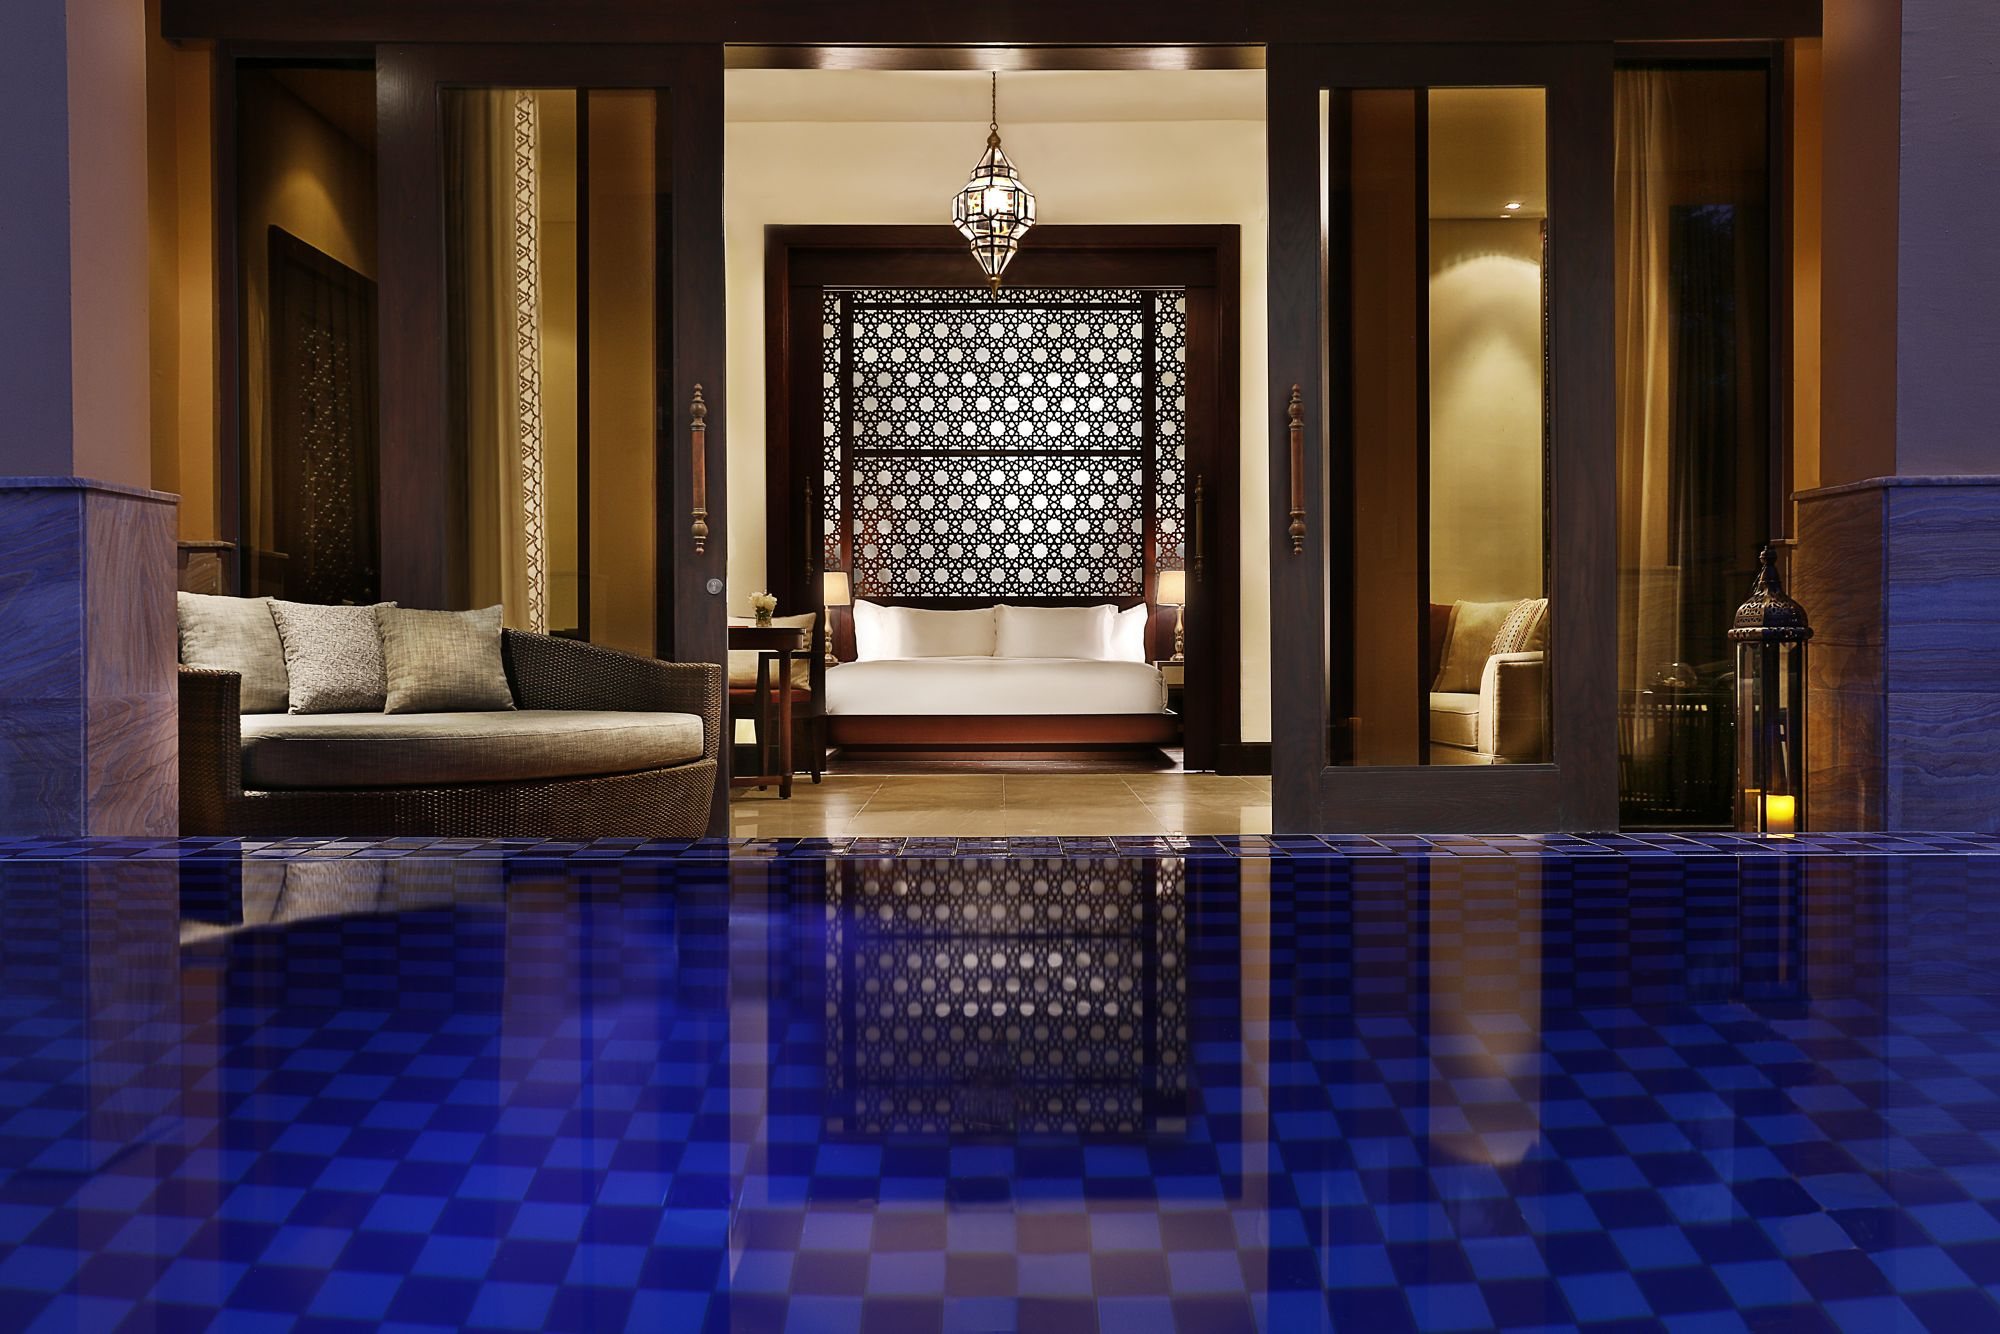 ritz-carlton-al-wadi-pool-suite